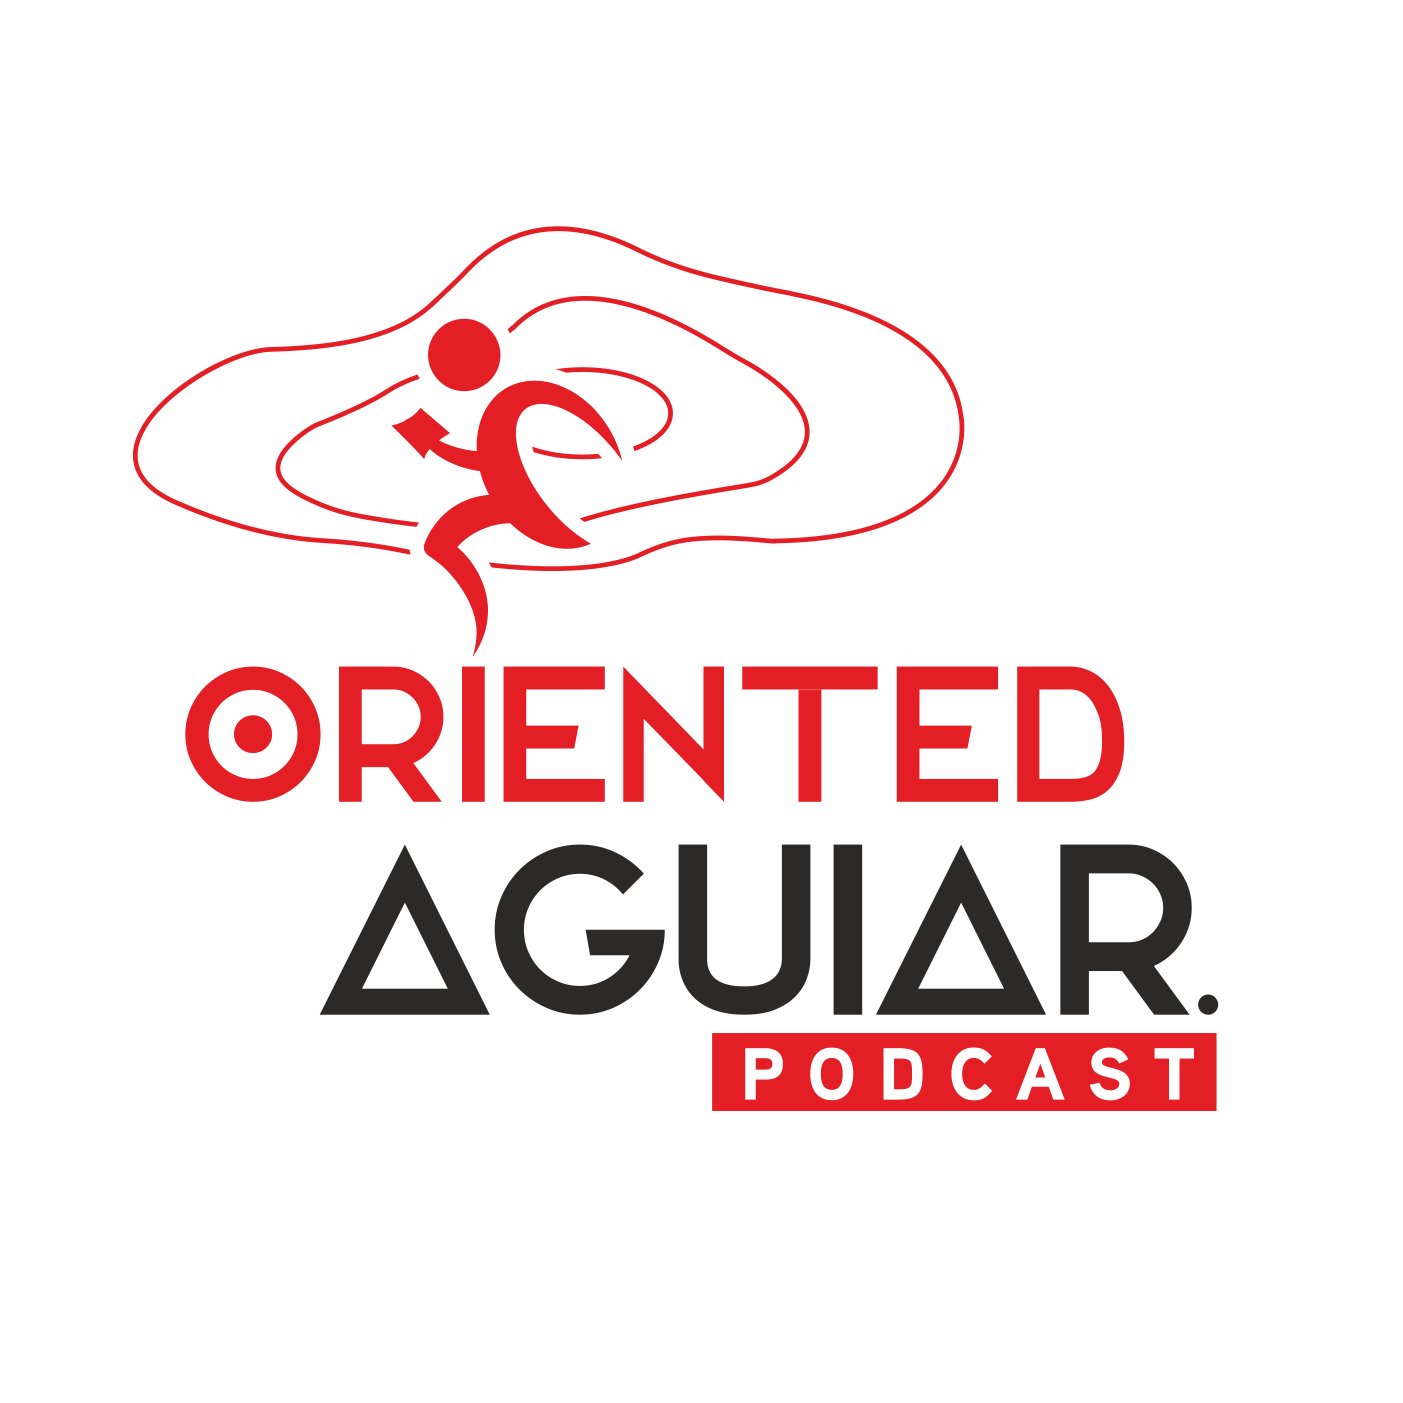 Oriented for Life podcast by O-Portugal.pt